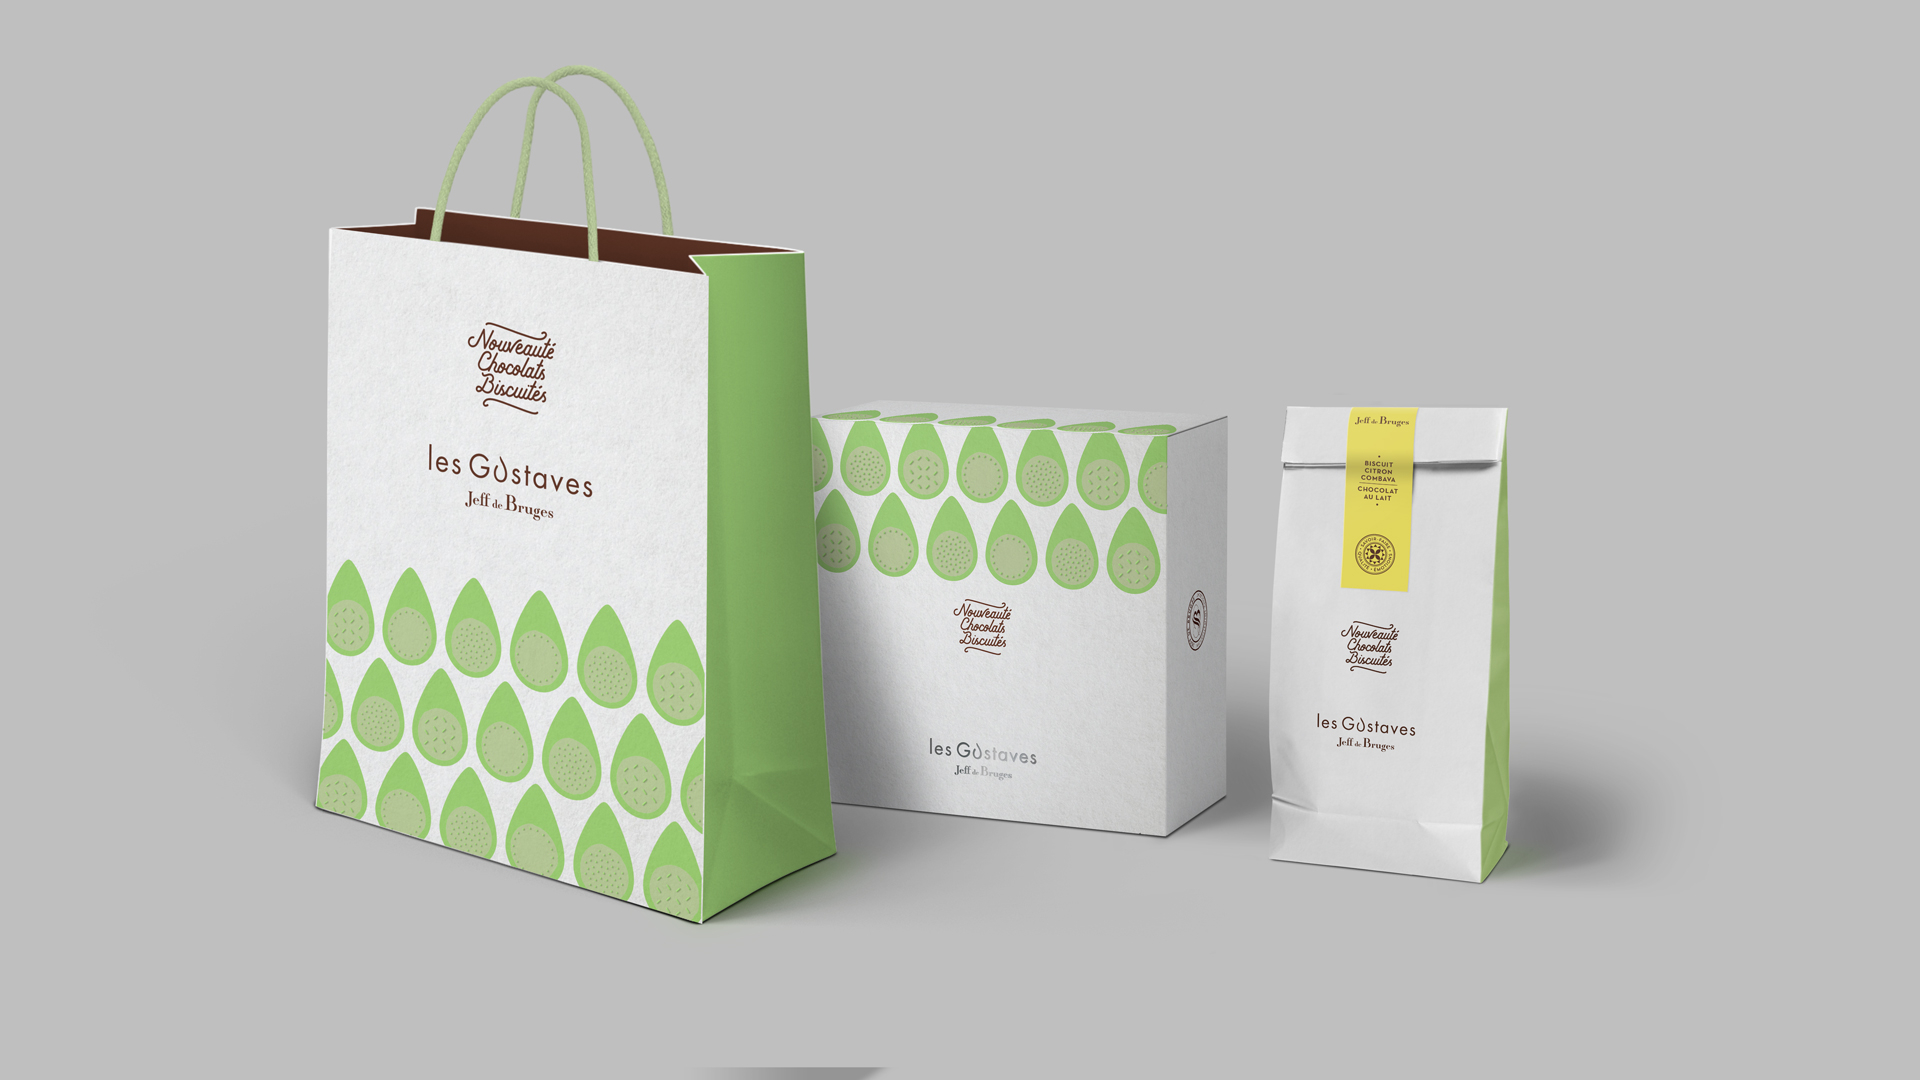 jeff-de-bruges - design global - packaging - agence-s & saguez - paris